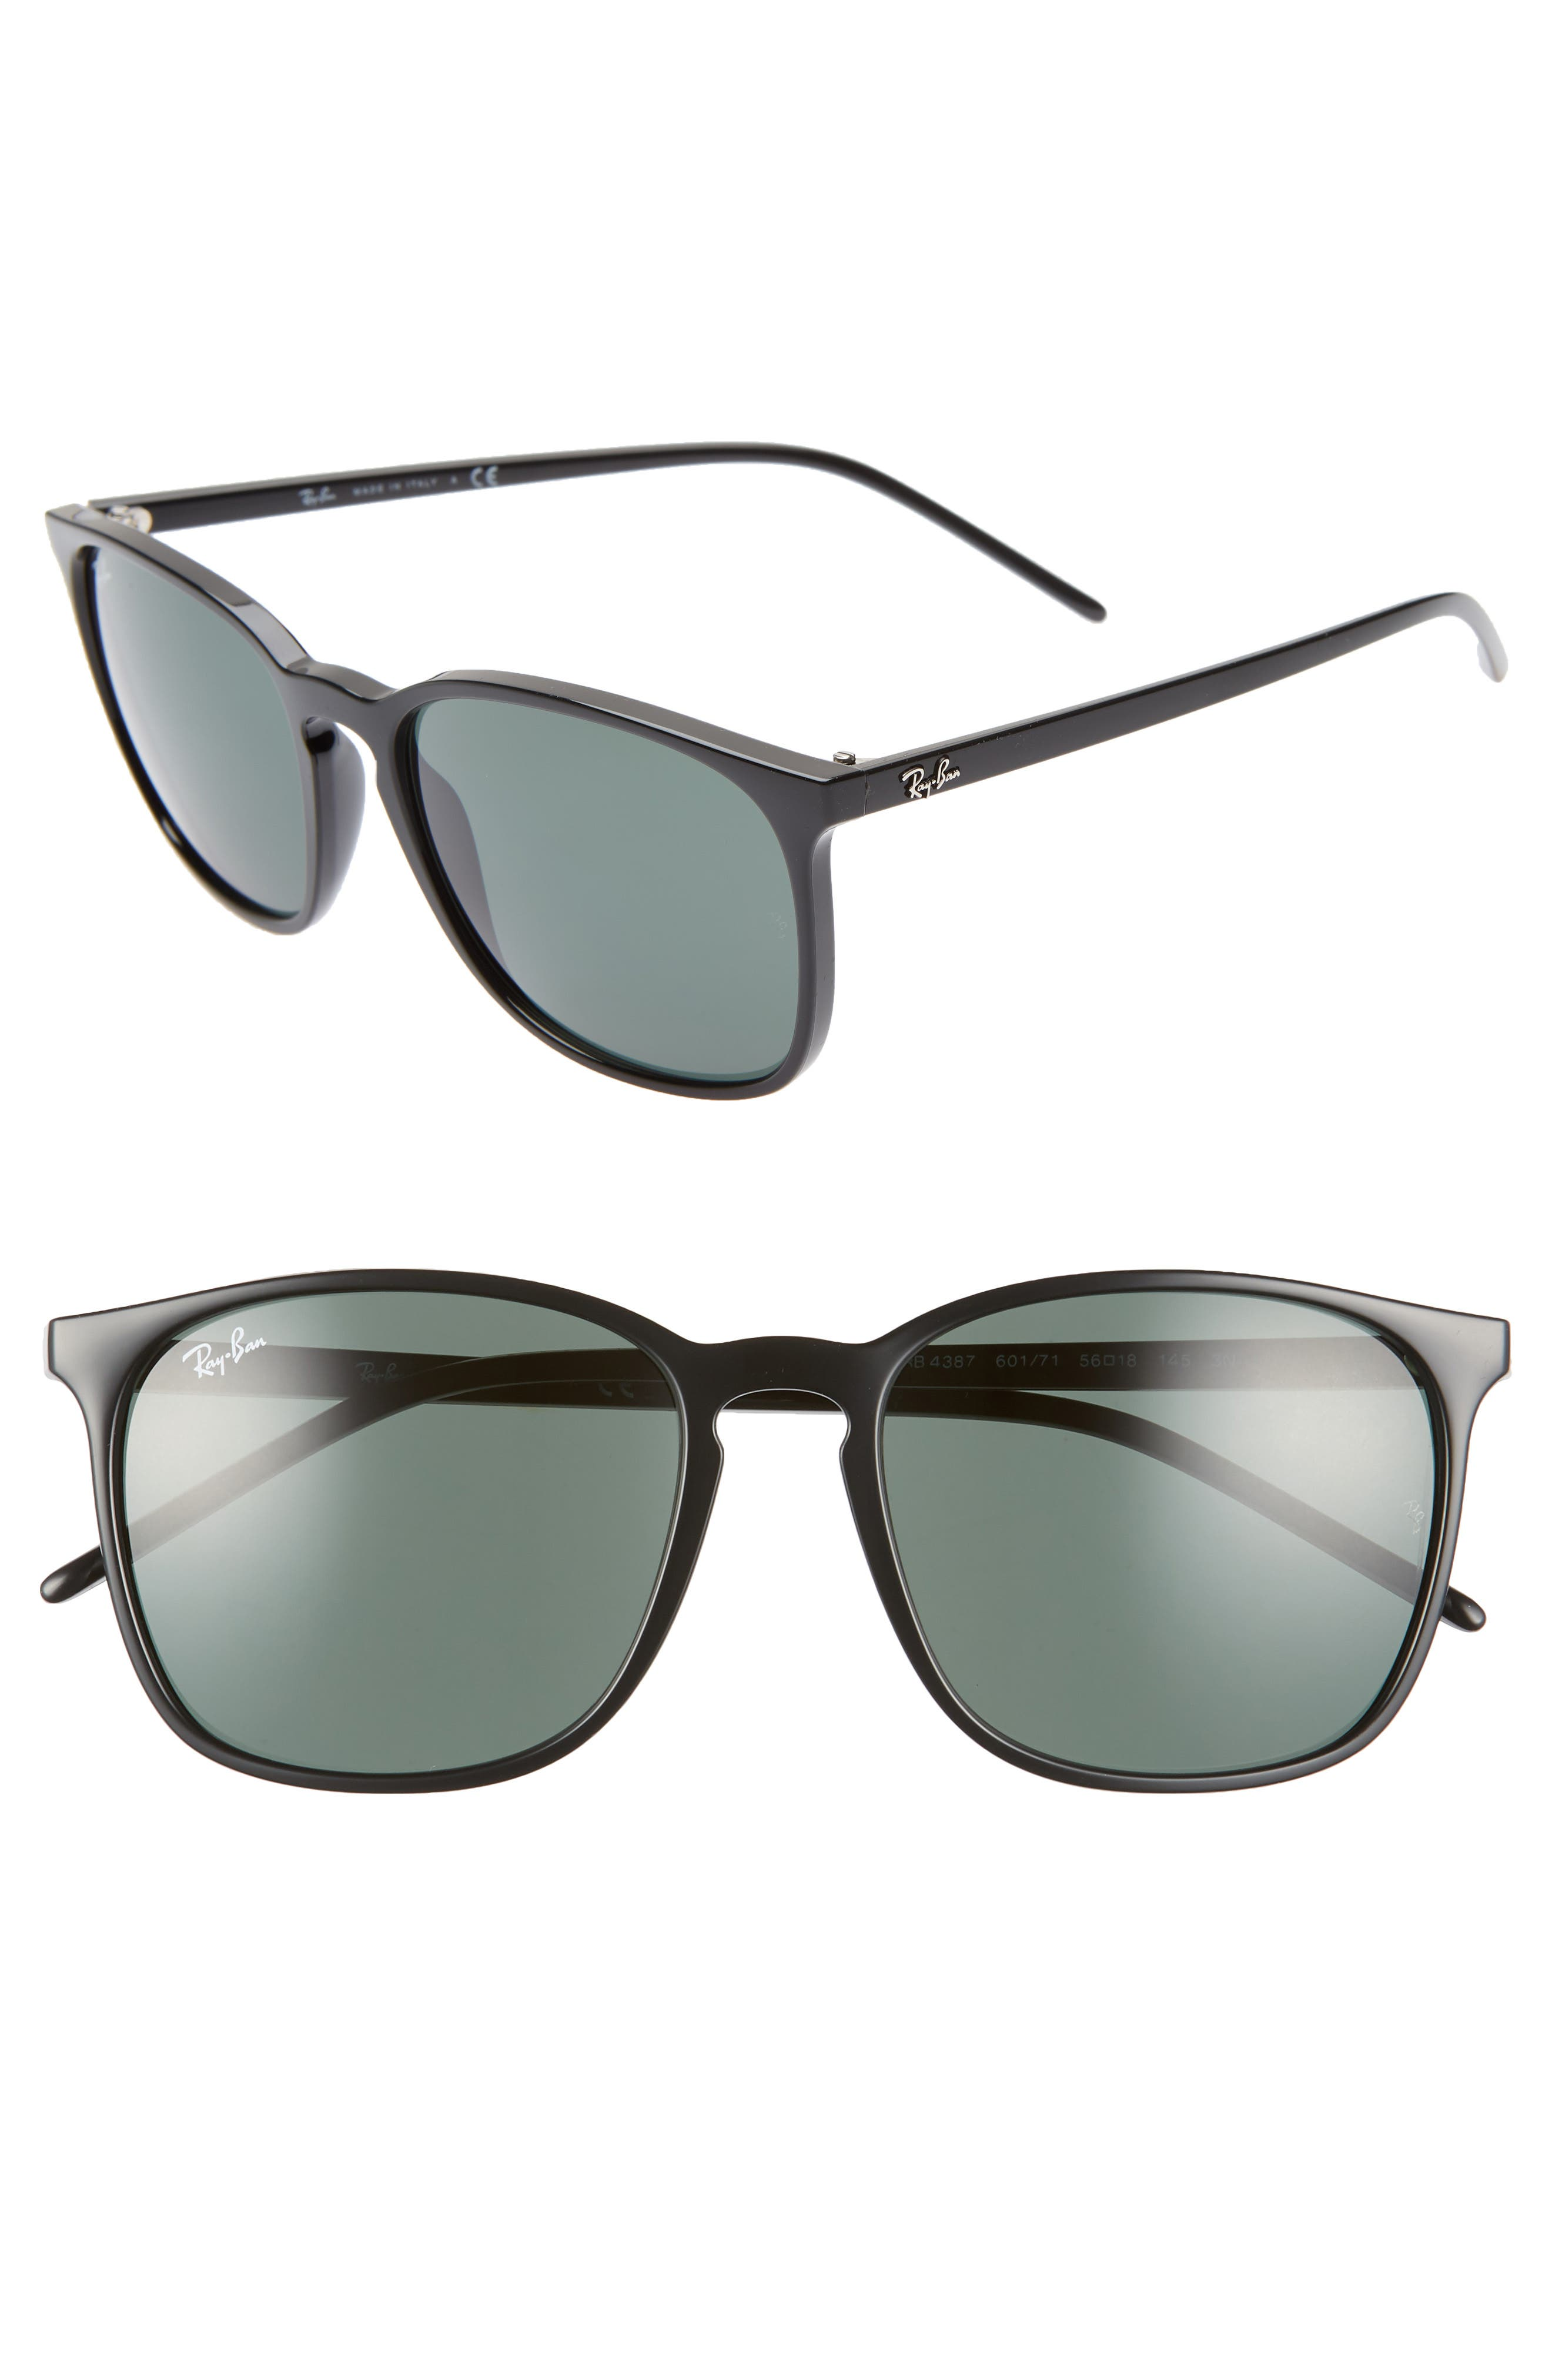 Ray-Ban 5m Sunglasses - Black/ Green Solid